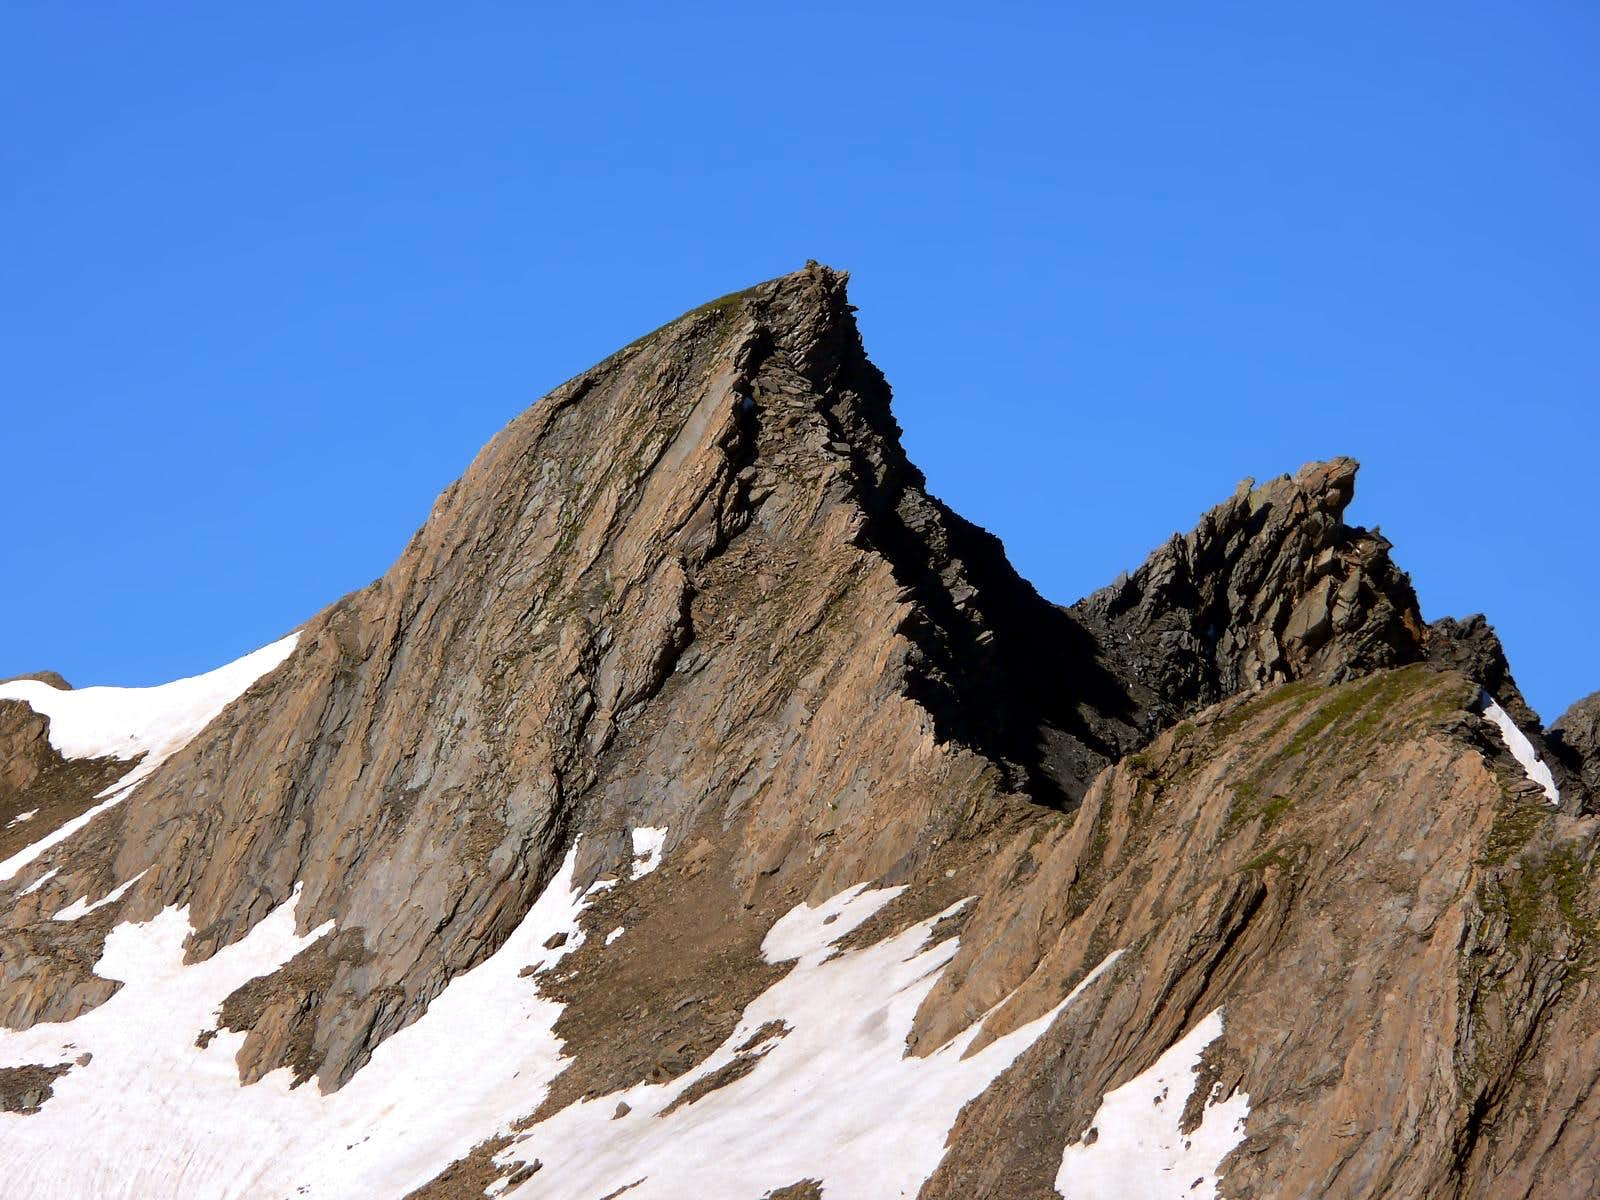 <font color=blue>▲</font>Aiguille de Leisasse or Lesache